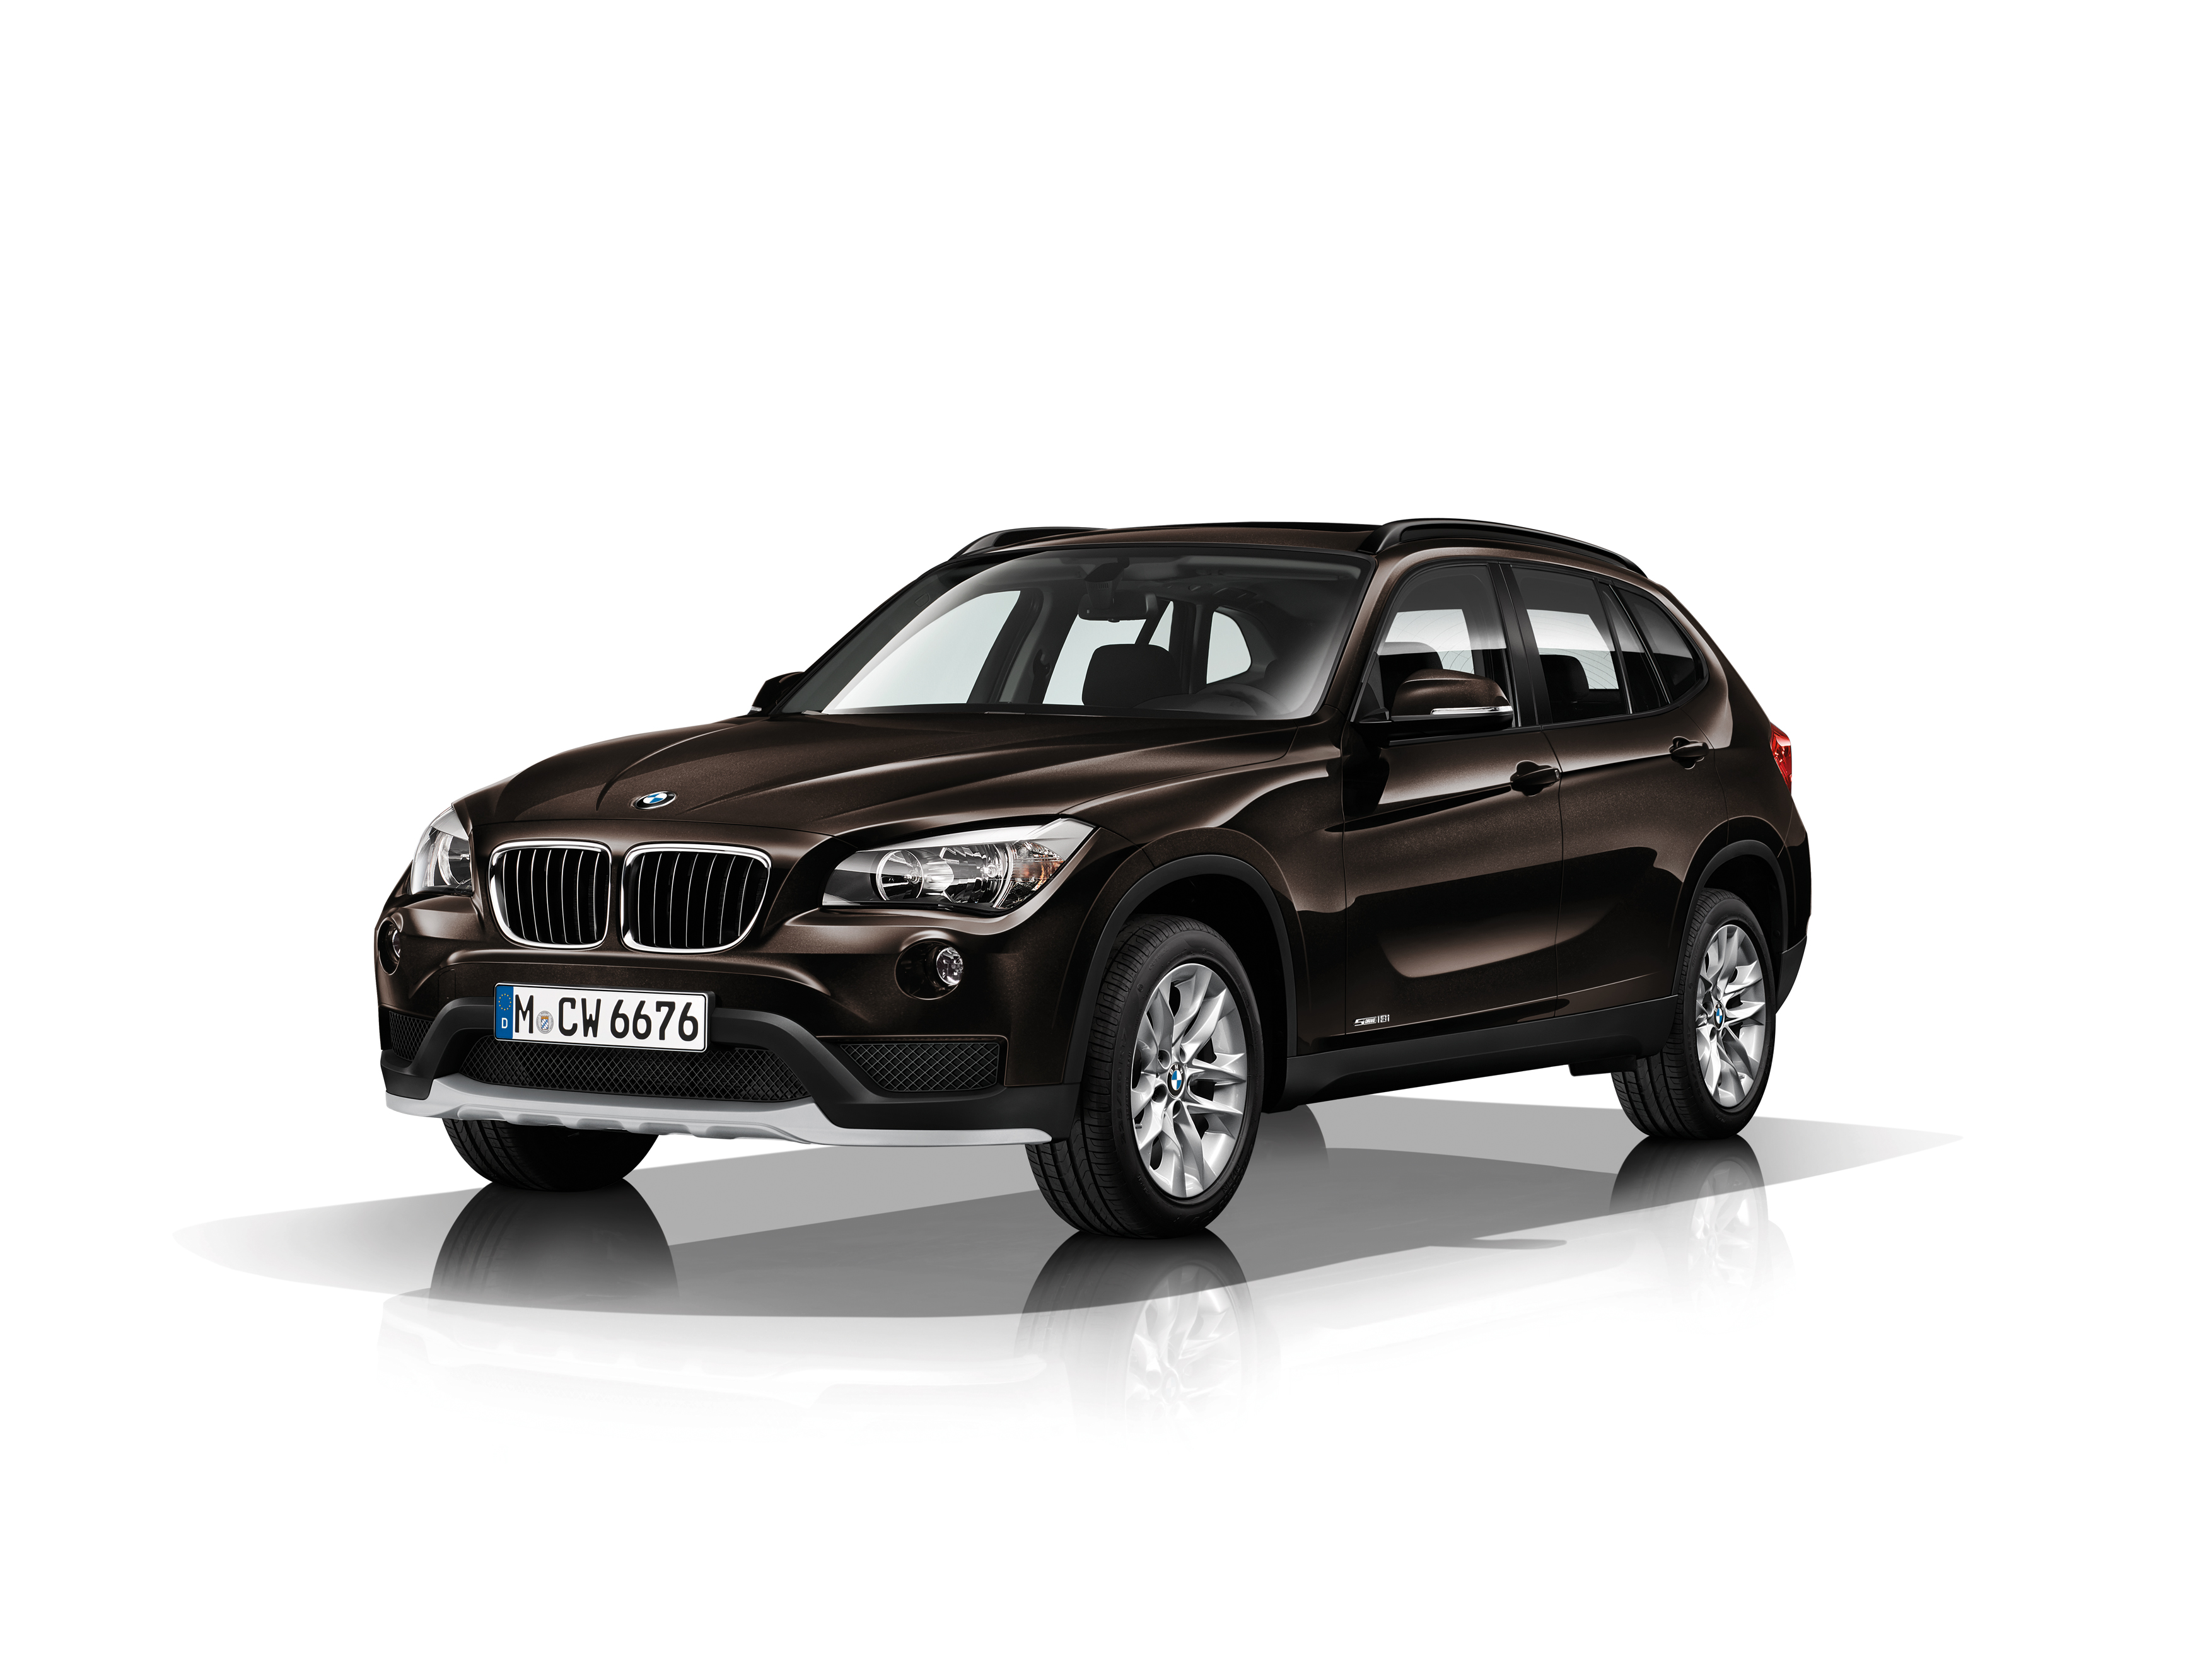 BMW X1 sDrive18i 2012 photo - 1